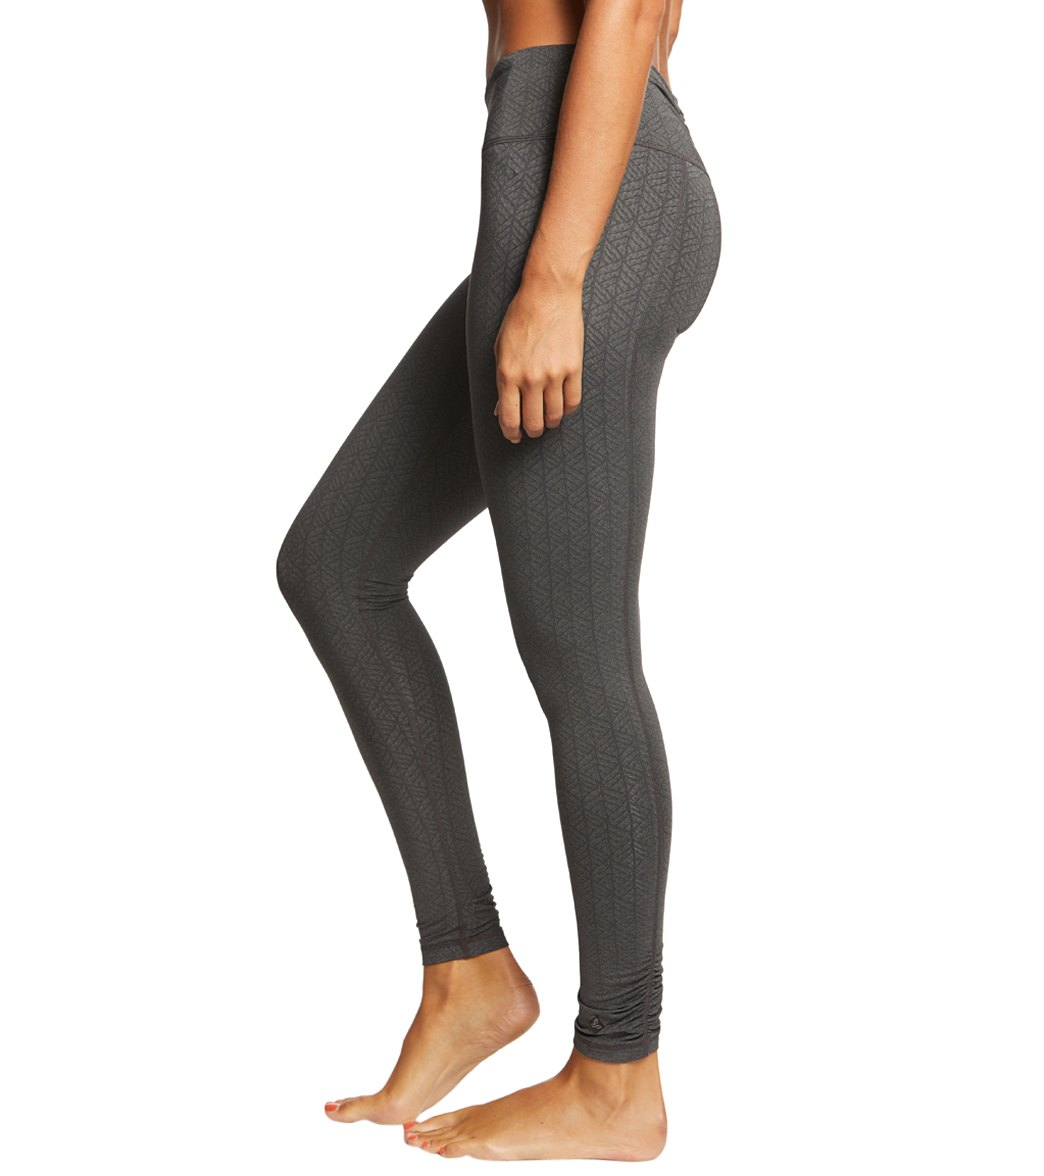 f63ba74ab9941 Prana Misty Yoga Leggings at YogaOutlet.com - Free Shipping